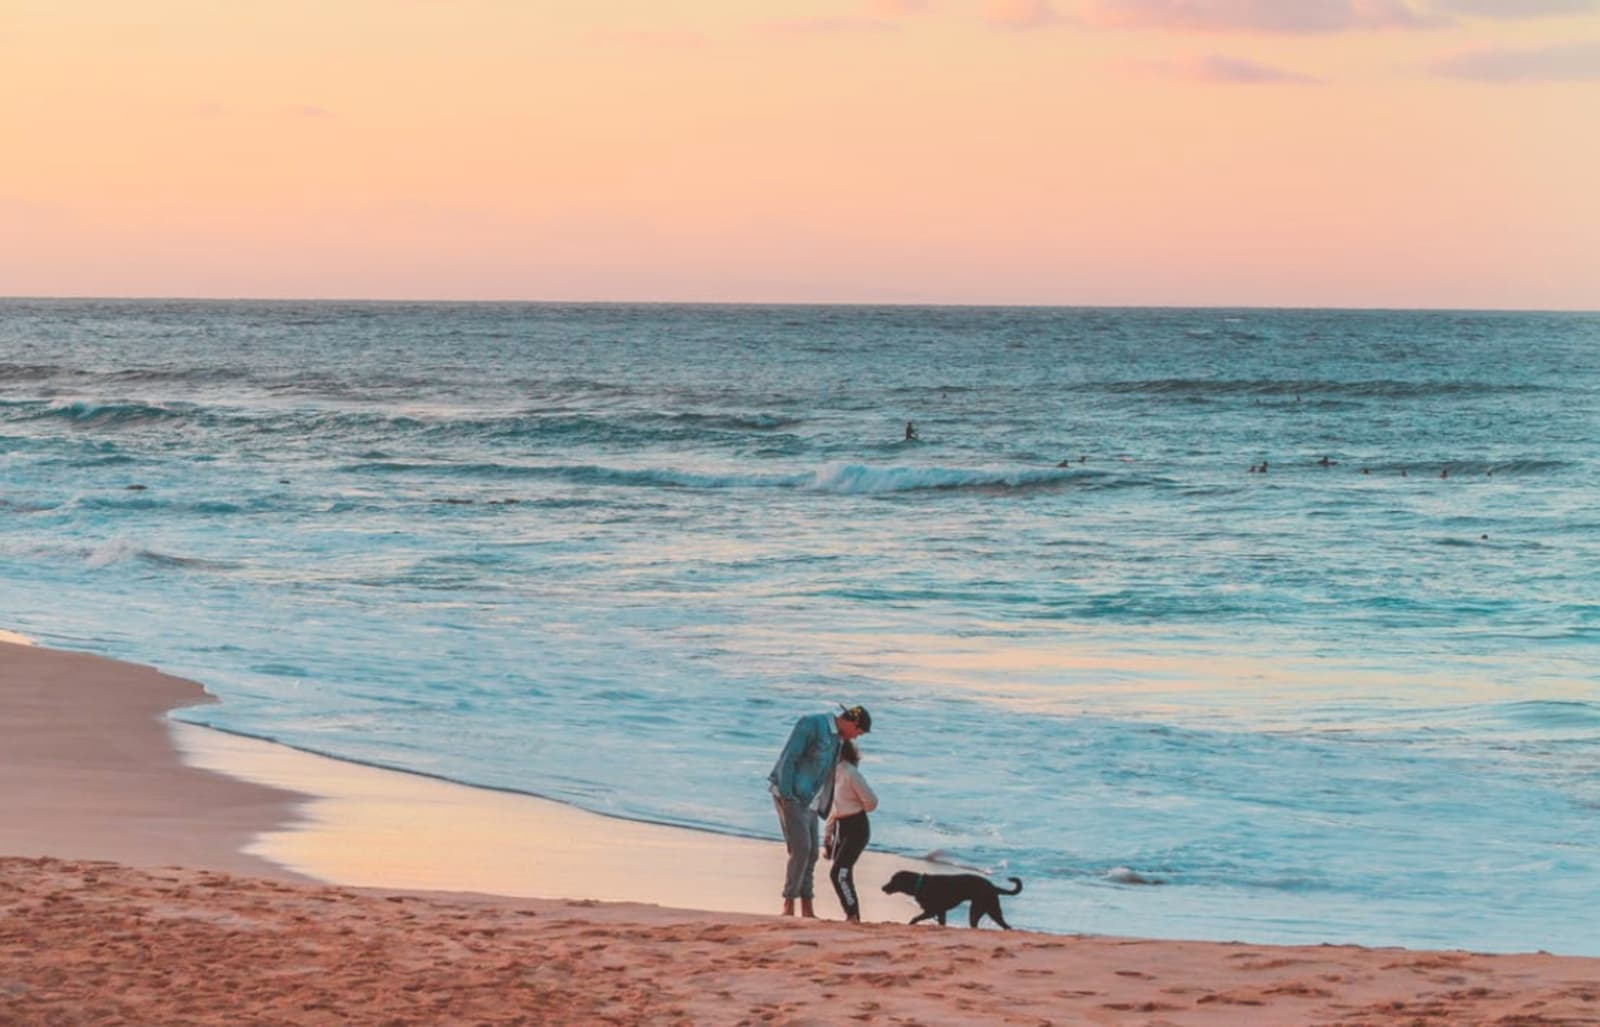 Beach near sunset or sunrise with man, woman, and dog in middle-distance